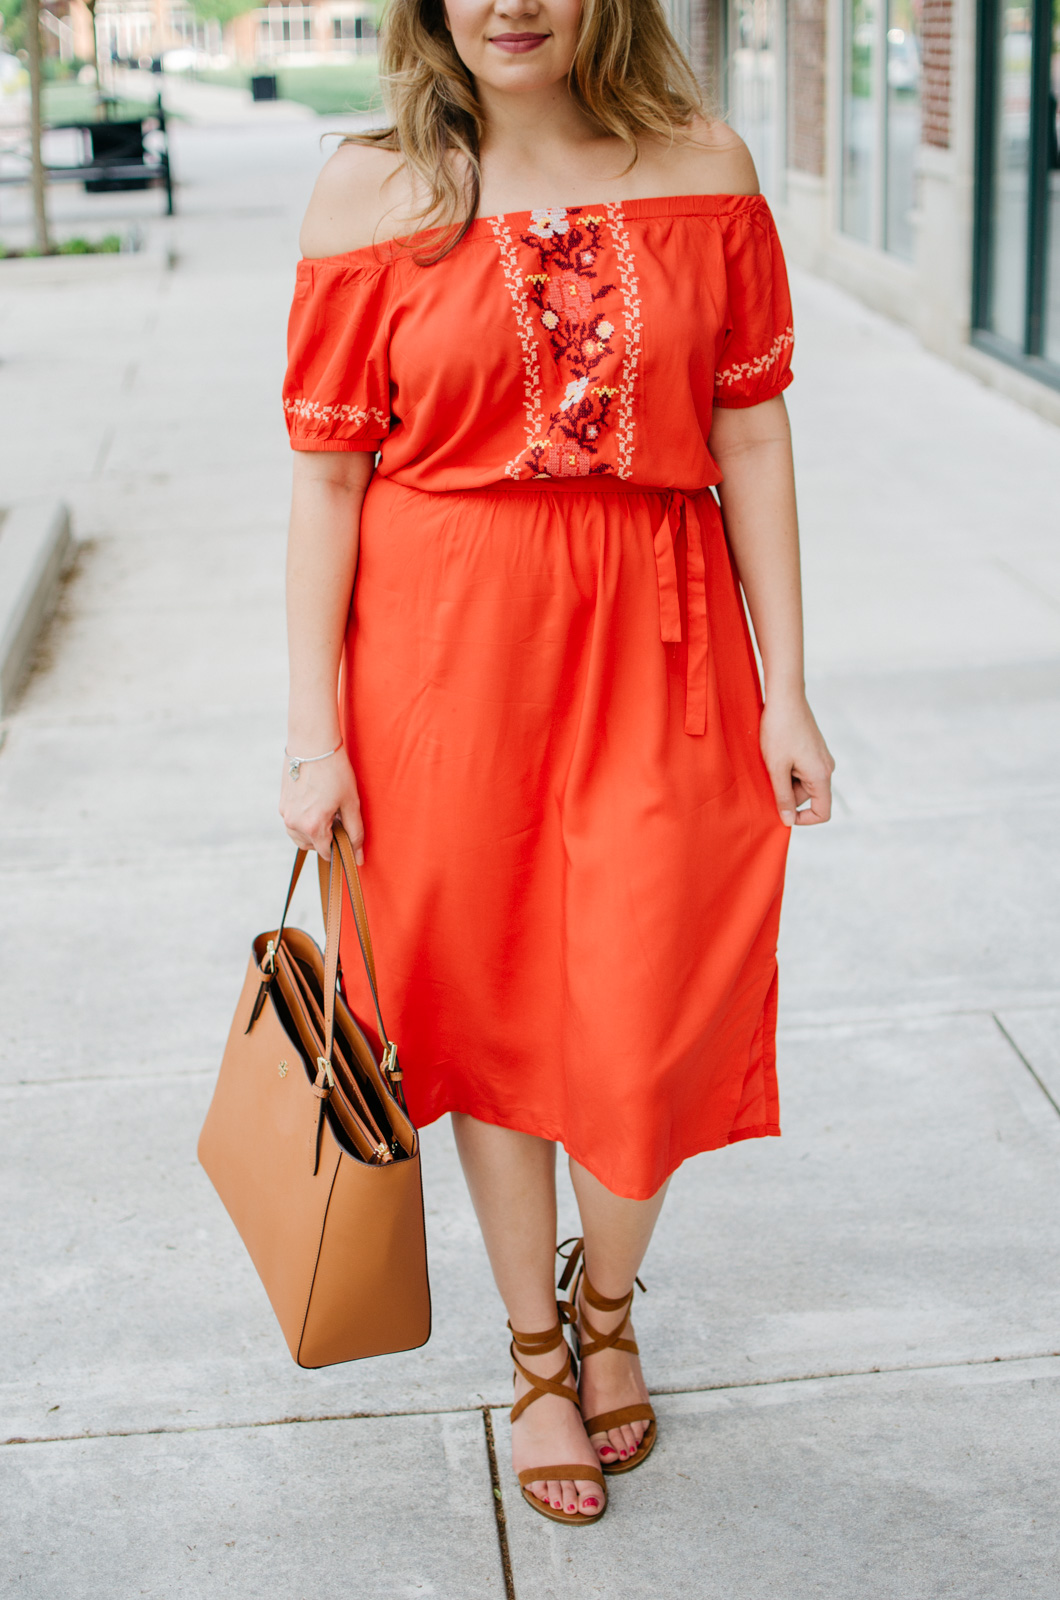 off shoulder embroidered dress - spring outfit idea | bylaurenm.com